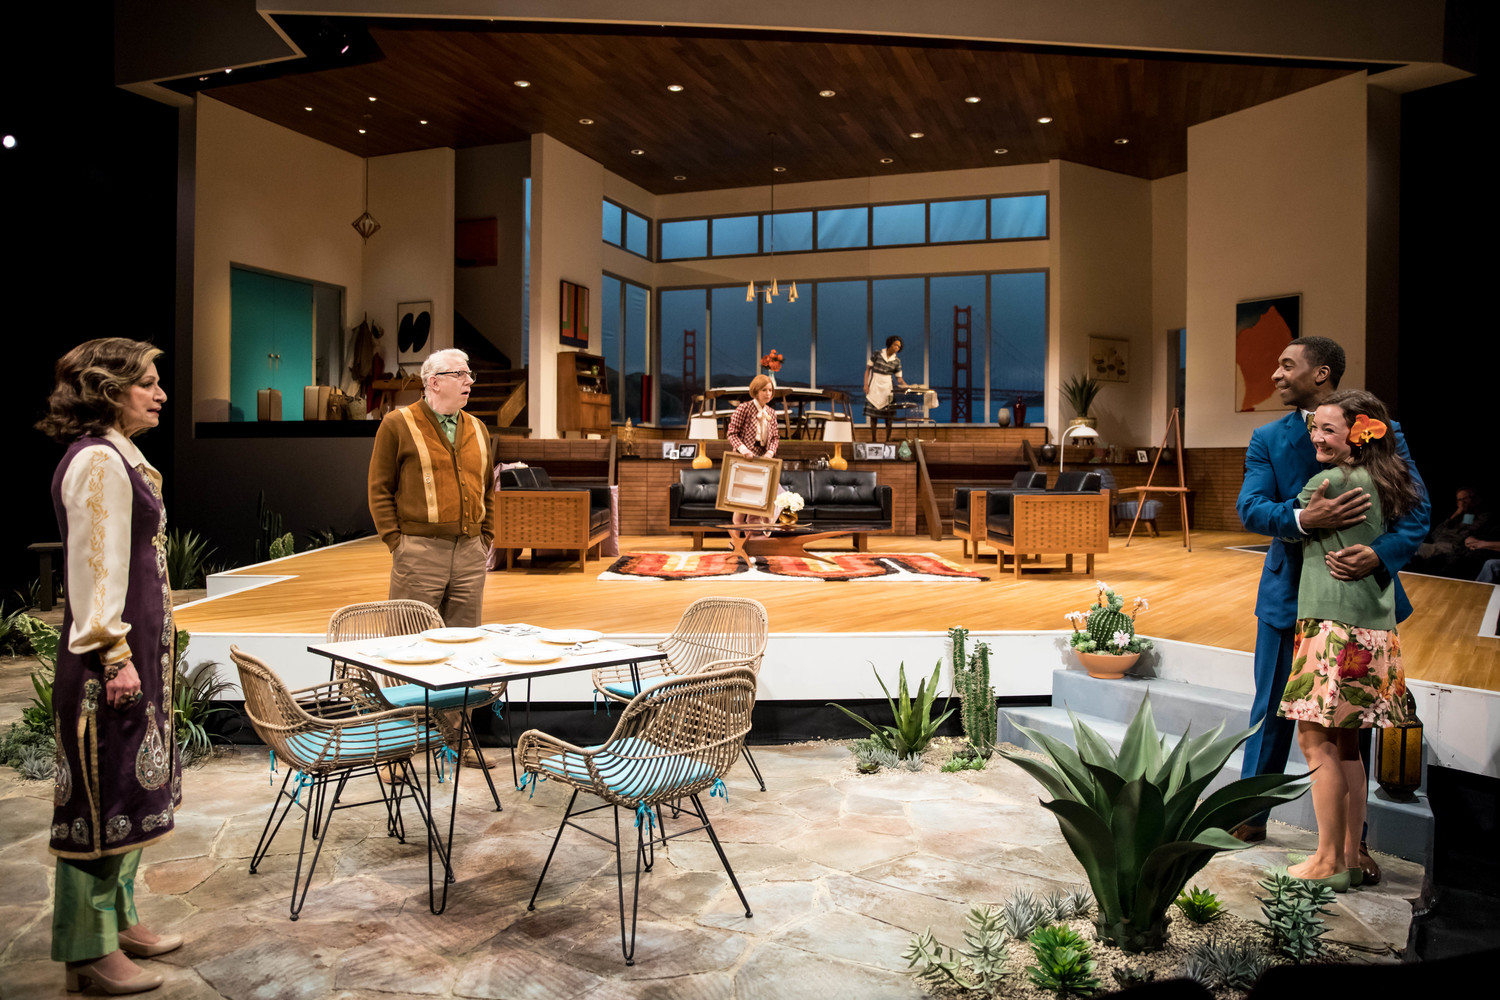 BWW Review: GUESS WHO'S COMING TO DINNER at The Guthrie